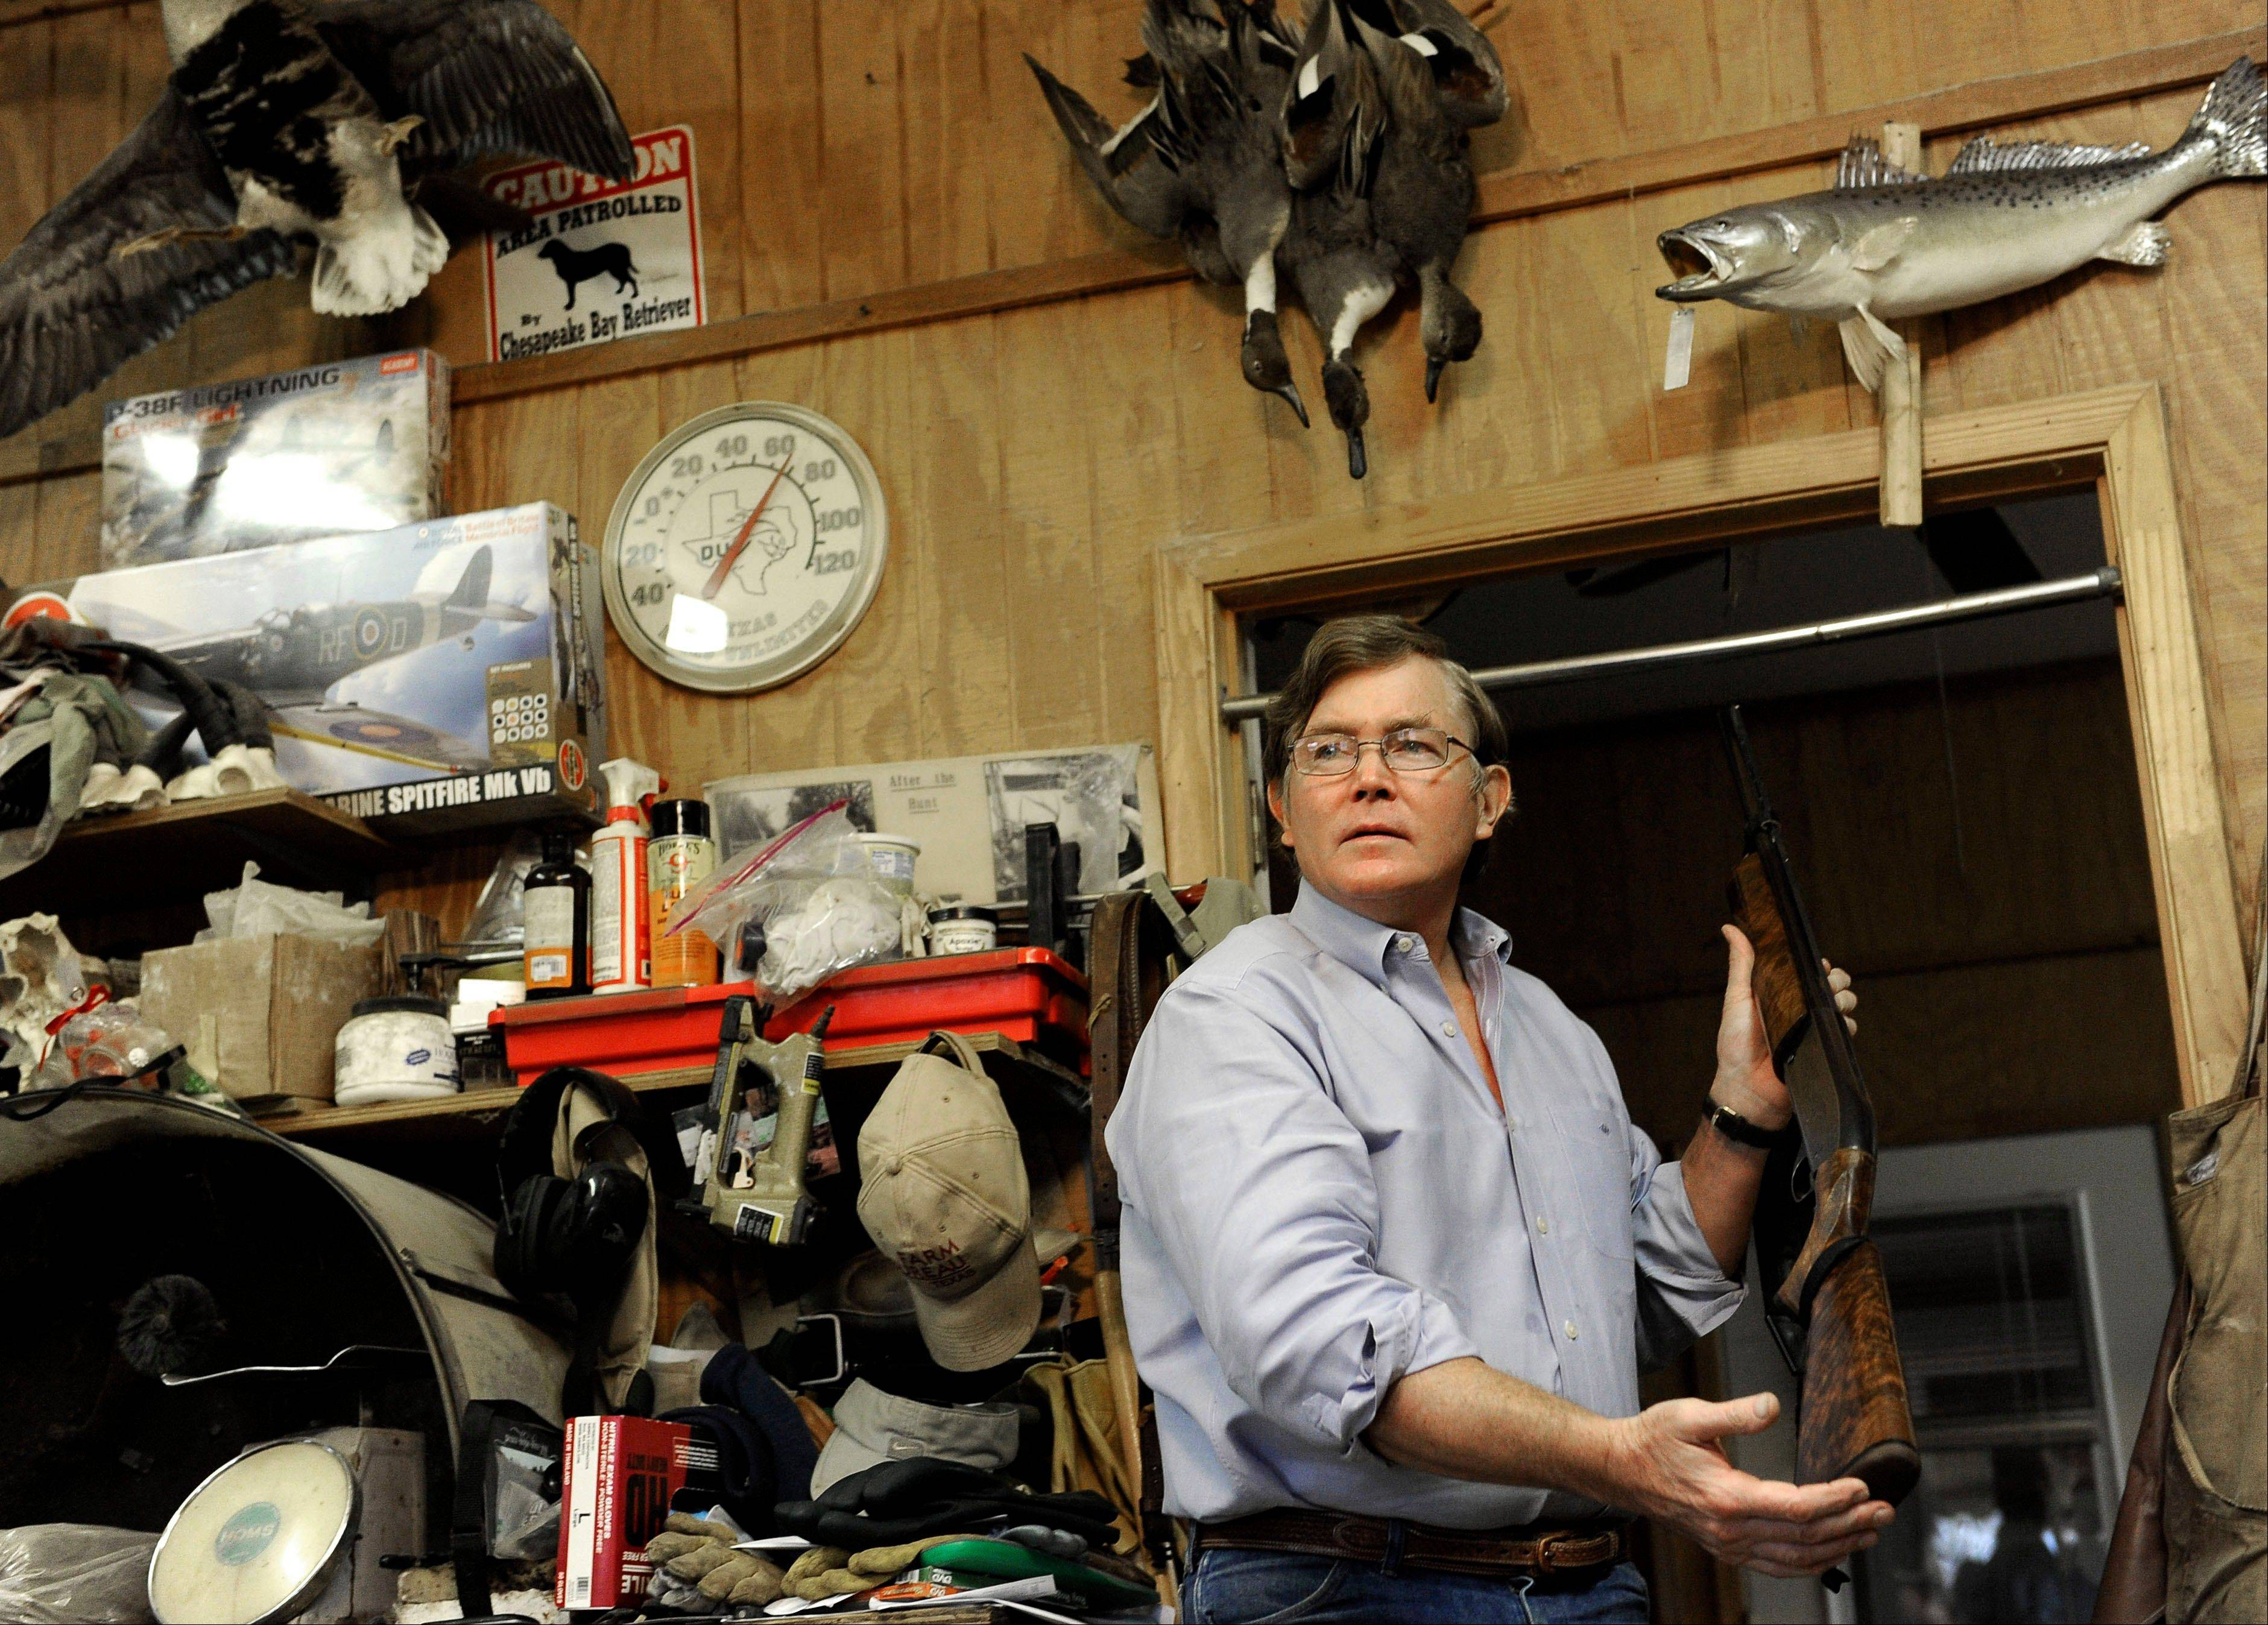 Taxidermist Bill Moos displays one of his shotguns last week in his shop in Bryan, Texas. Moos, who owns a collection of more than 30 guns, can be spotted any given morning, prowling his roughly 40-acre ranch with his dogs and a shotgun slung over his shoulder.